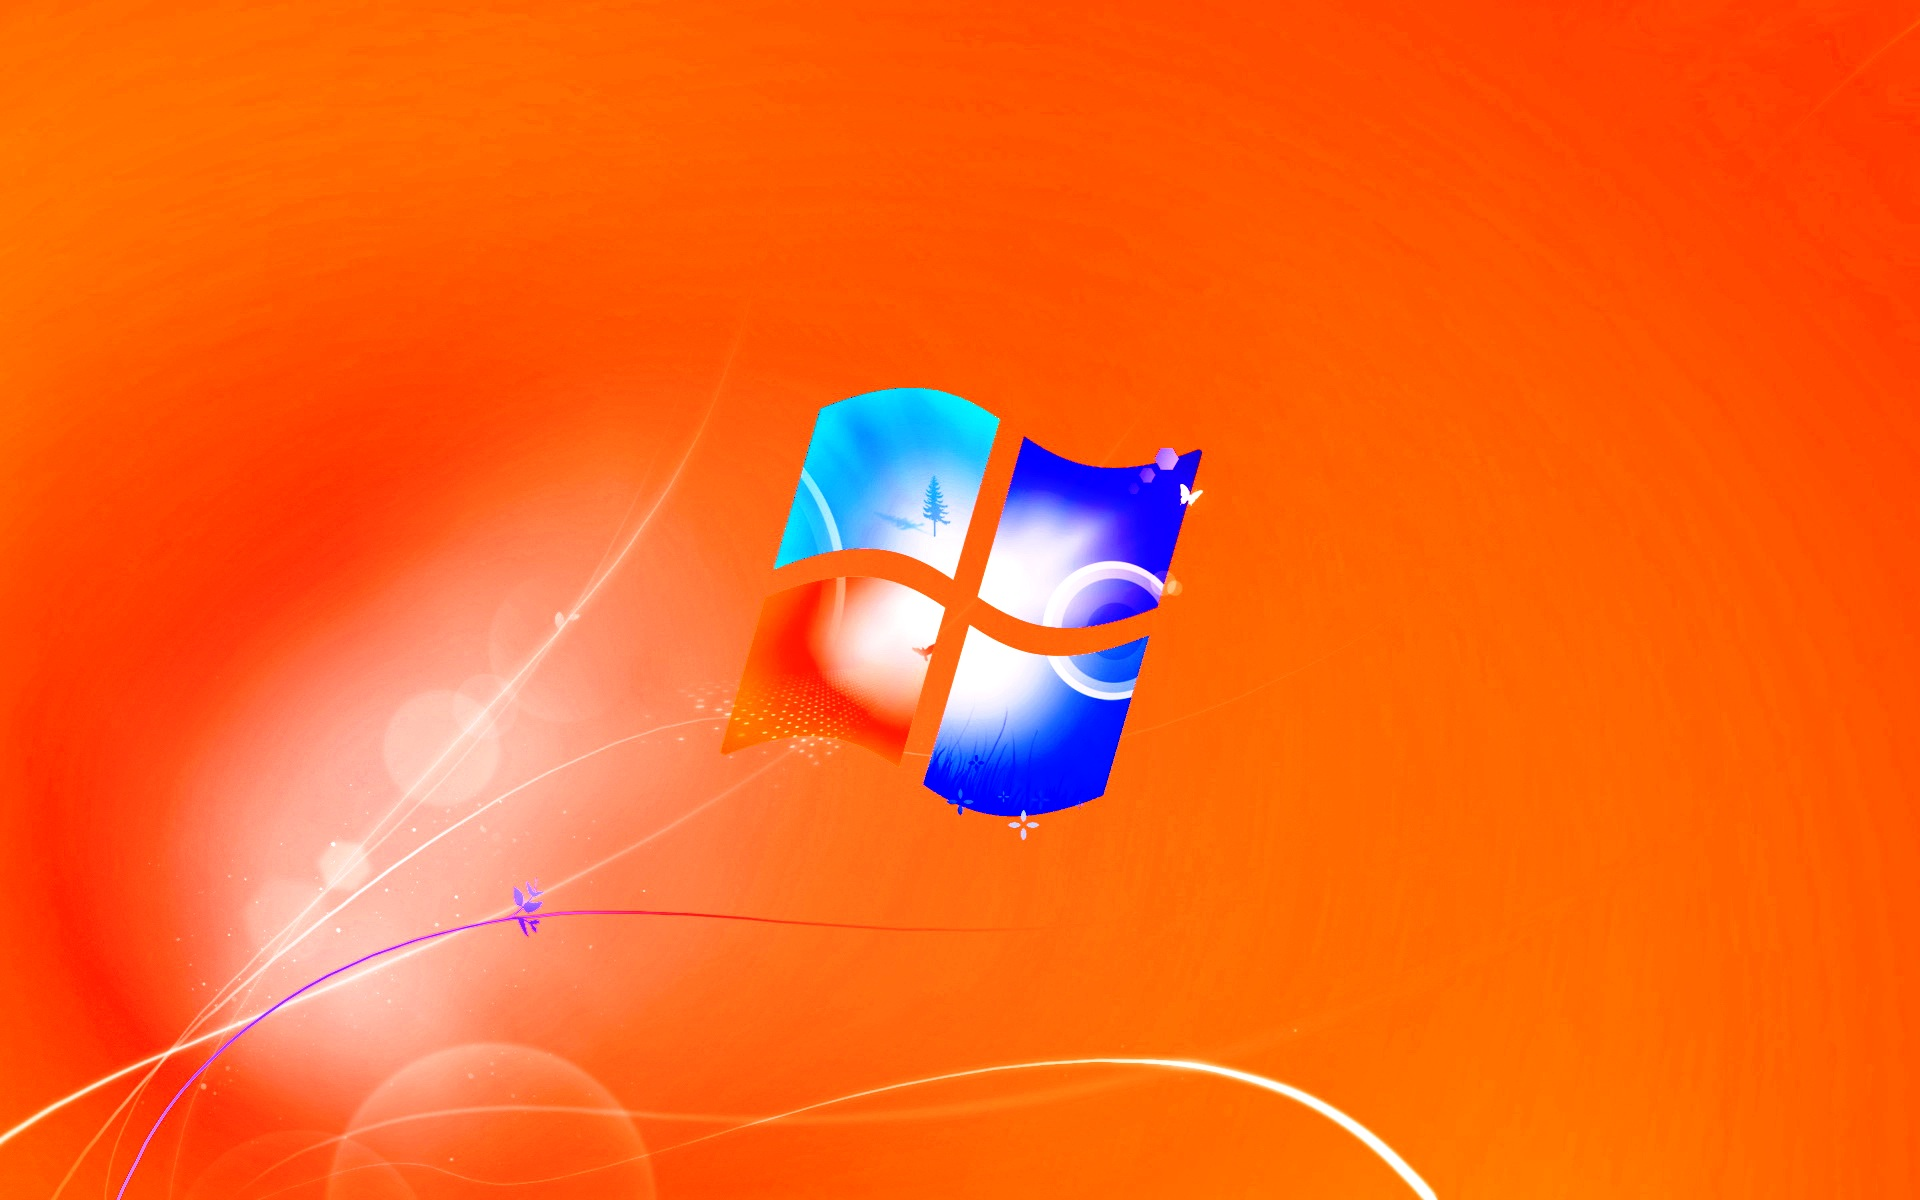 Free Xmas Wallpapers Animated Free Windows Desktop Backgrounds 46 Wallpapers